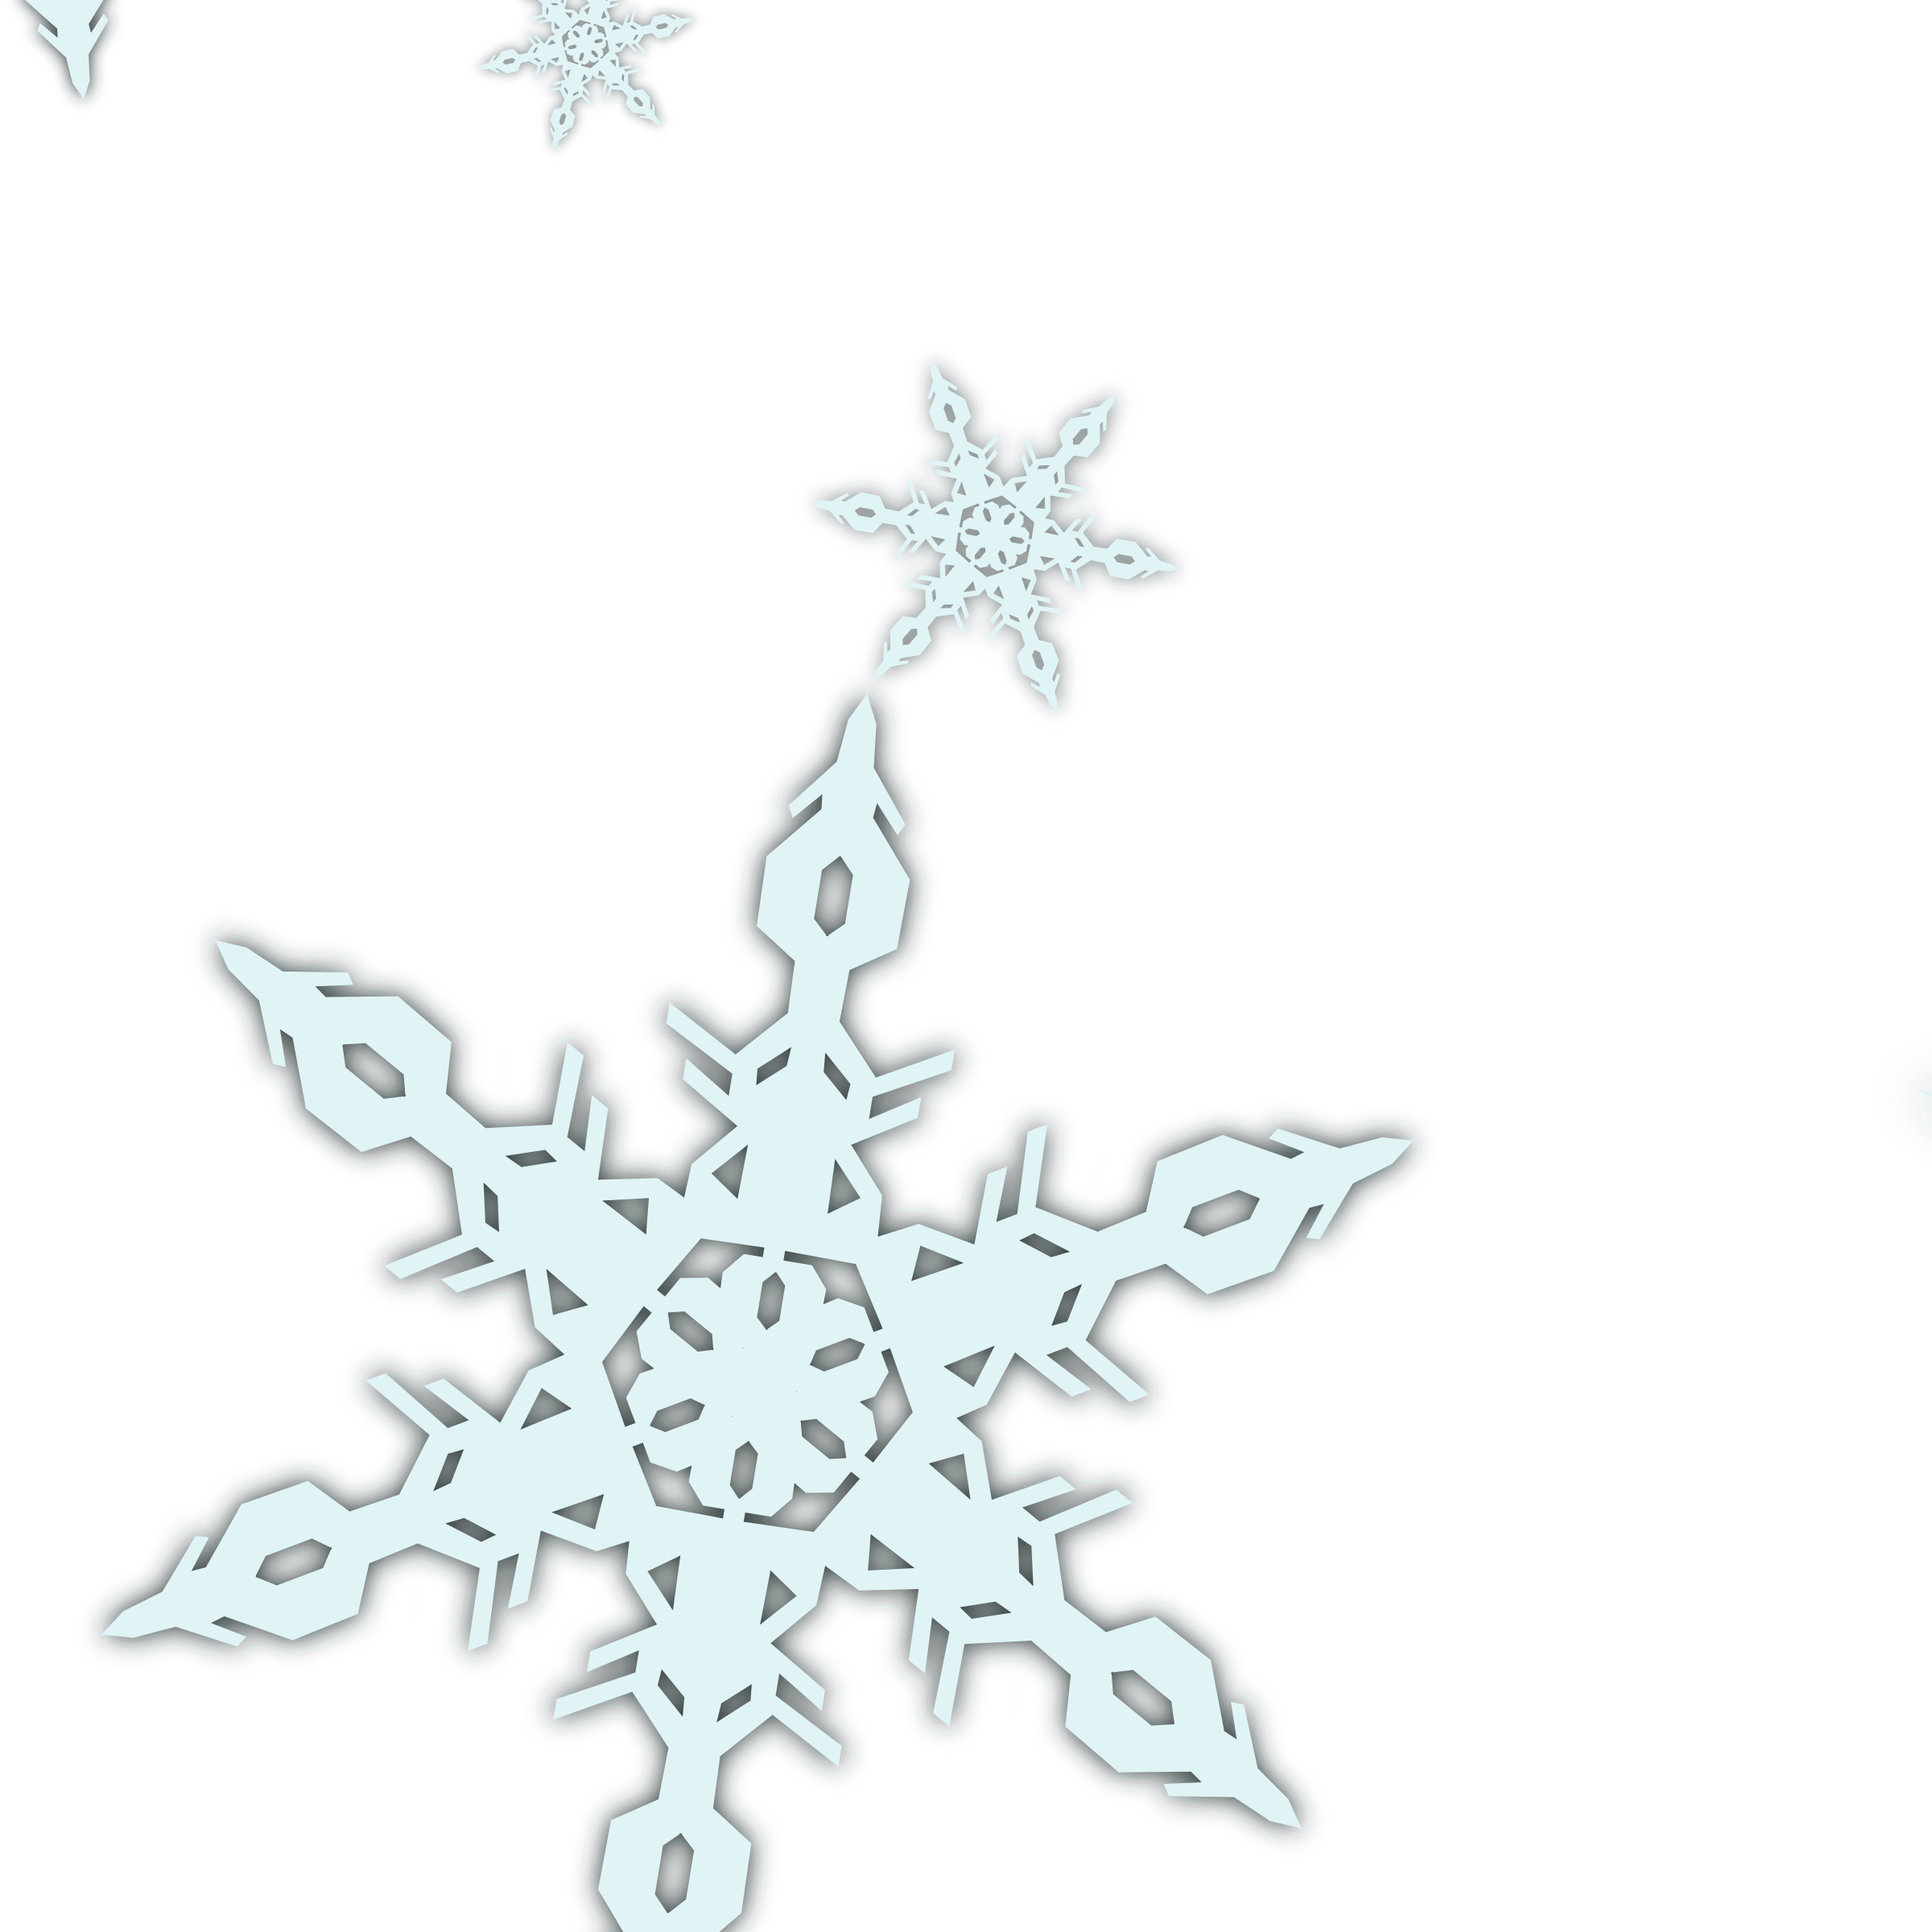 A snowflake by darth_schmoo